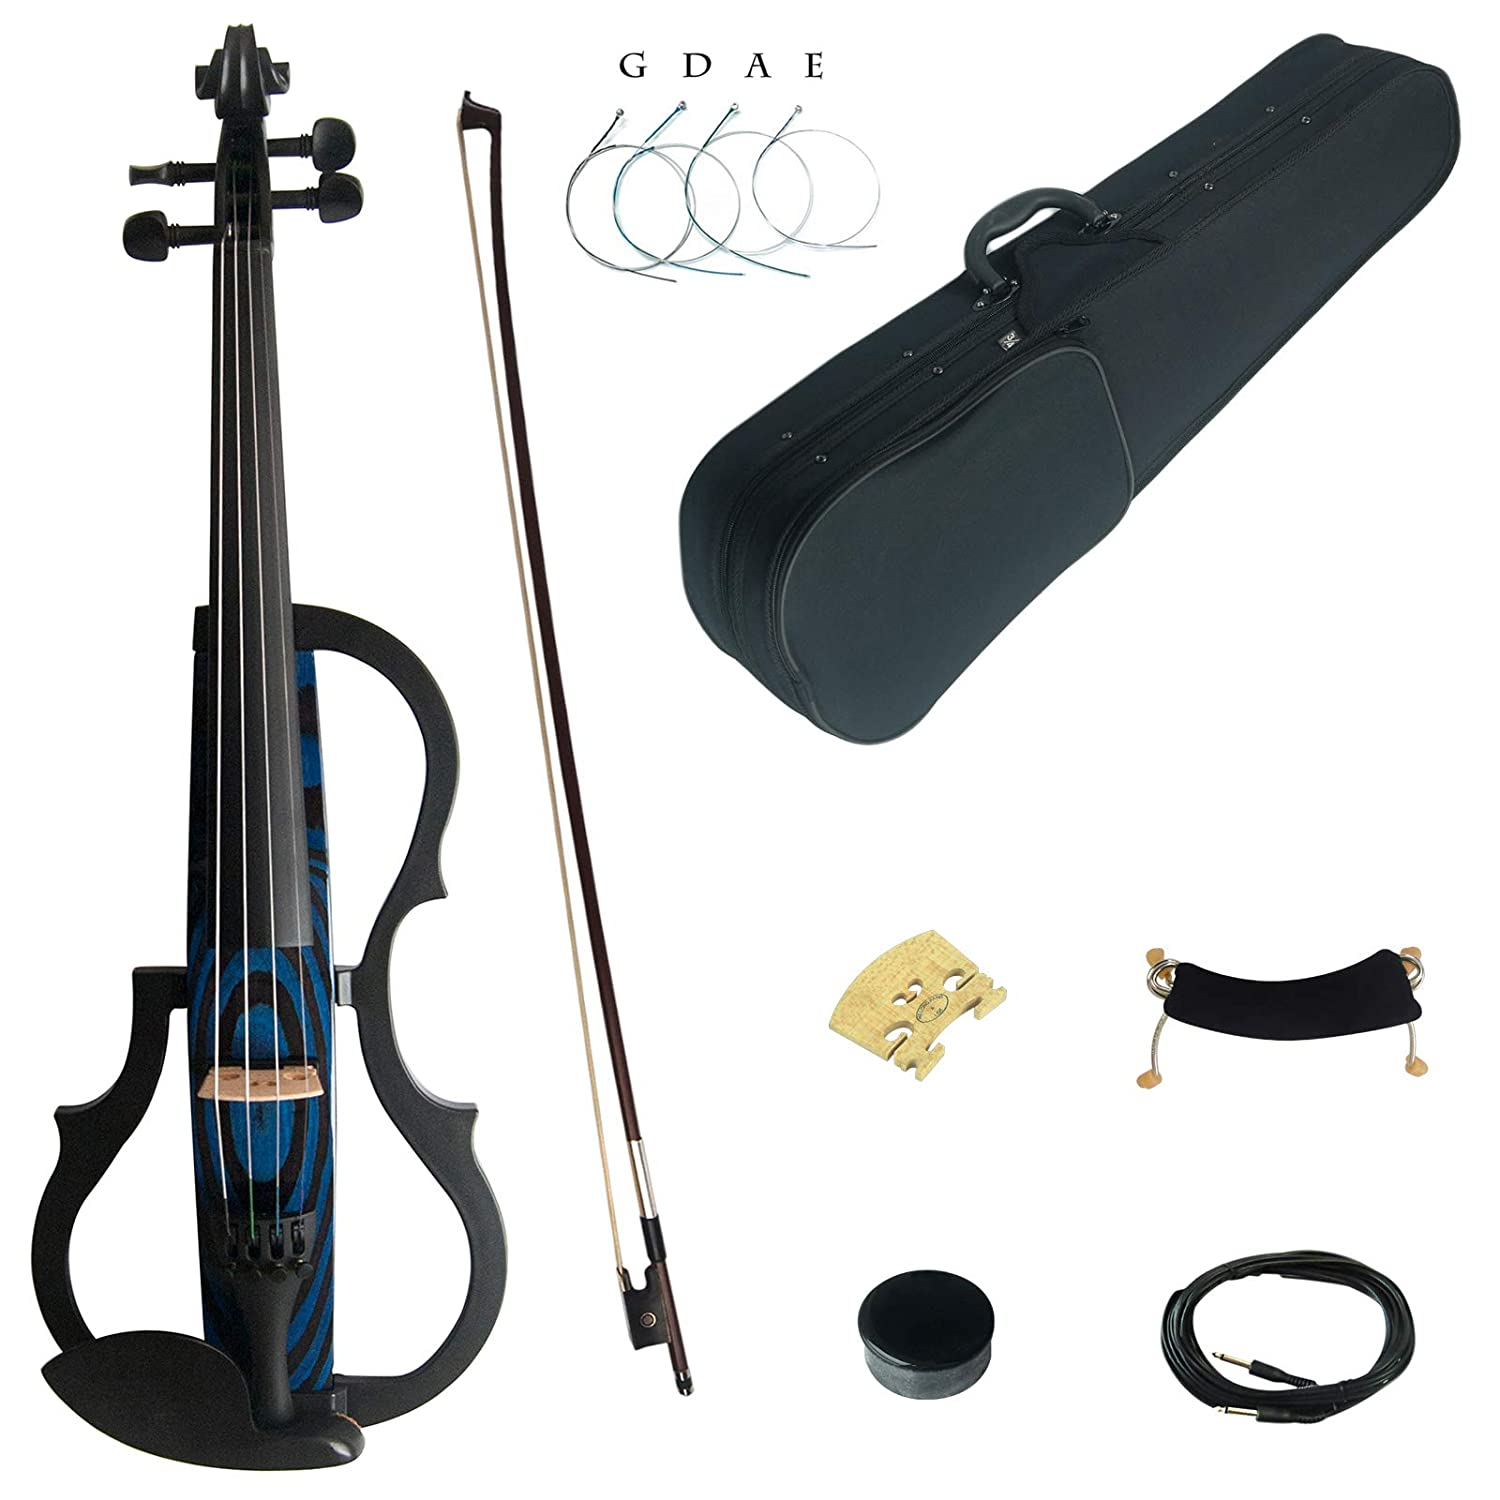 Kinglos 4/4 Gray Colored Solid Wood Advanced 3-Band-EQ Electric / Silent Violin Kit with Ebony Fittings Full Size (SDDS1602)